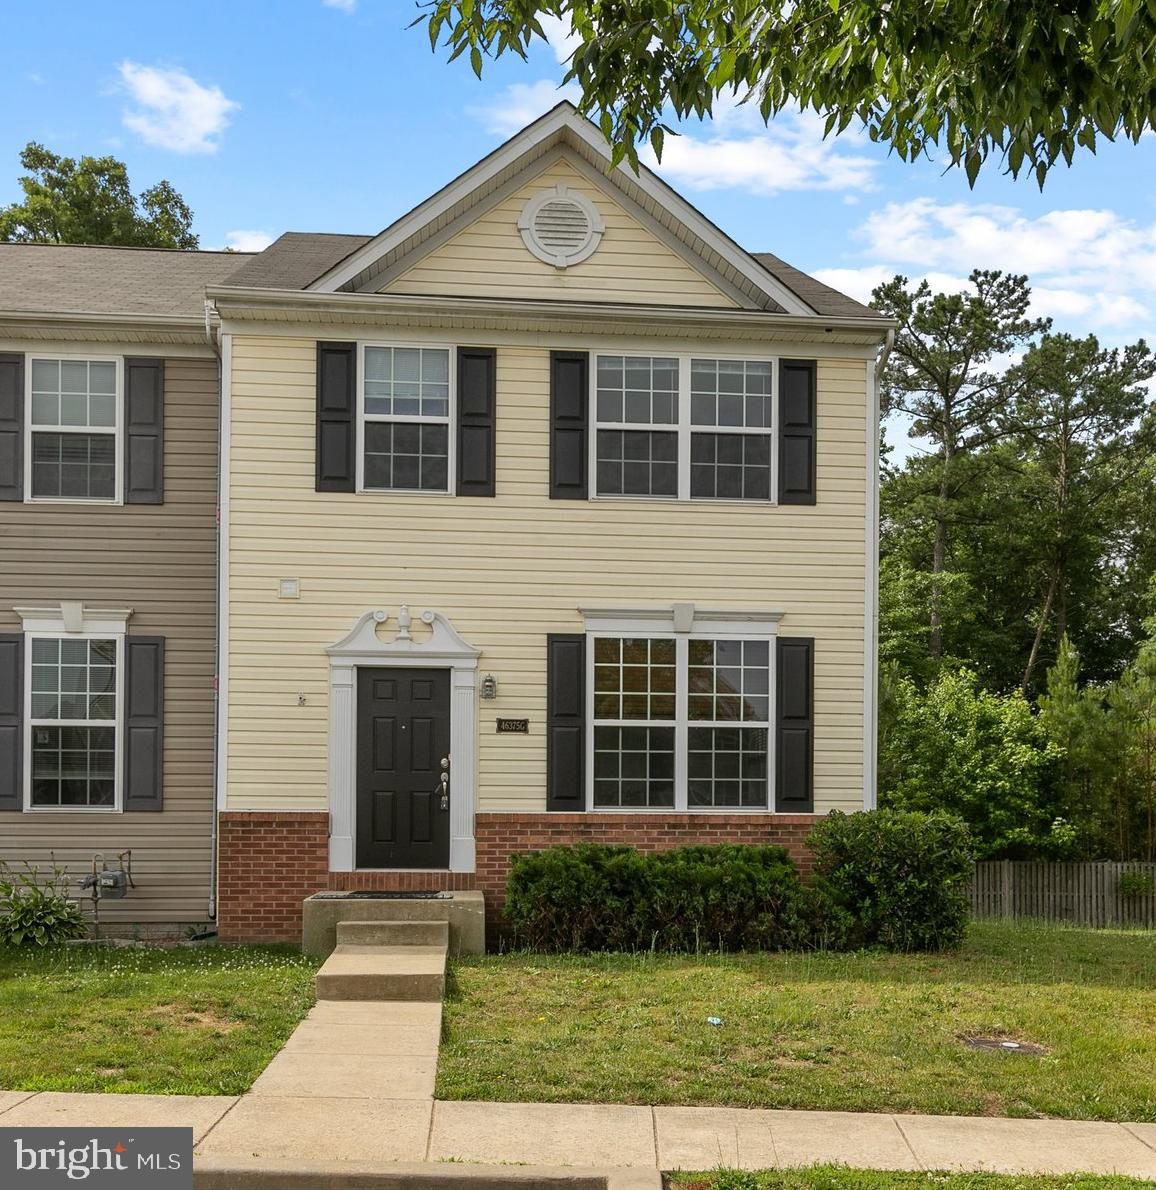 Well maintained end unit townhouse in Willow Gate community.   This 3 bedroom, 3.5 bathroom home has